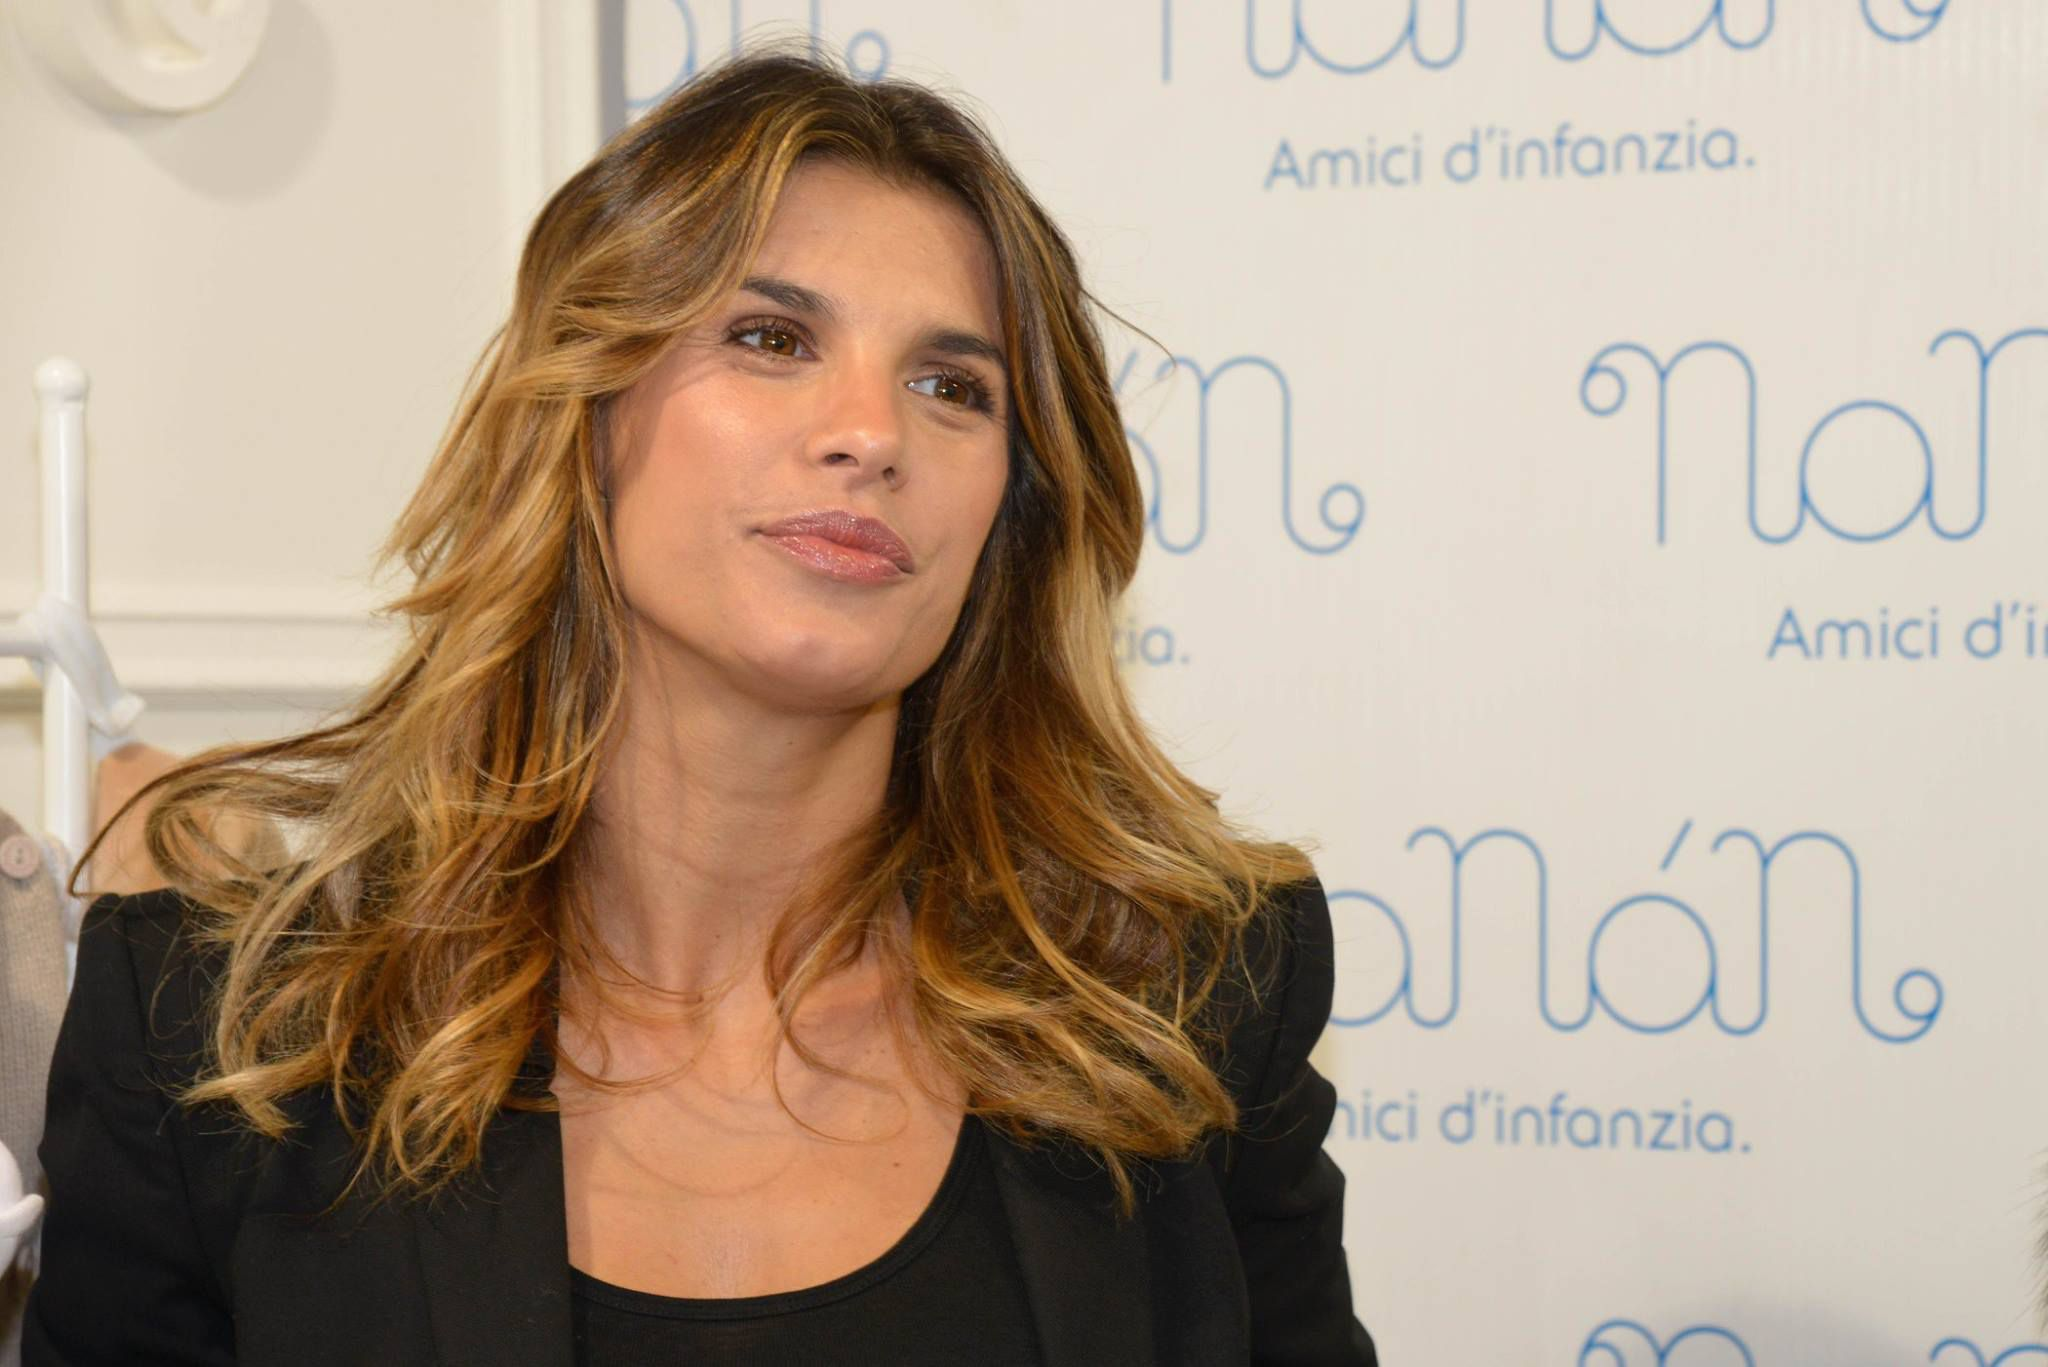 Elisabetta canalis wallpapers backgrounds full hd elisabetta canalis hd background voltagebd Gallery